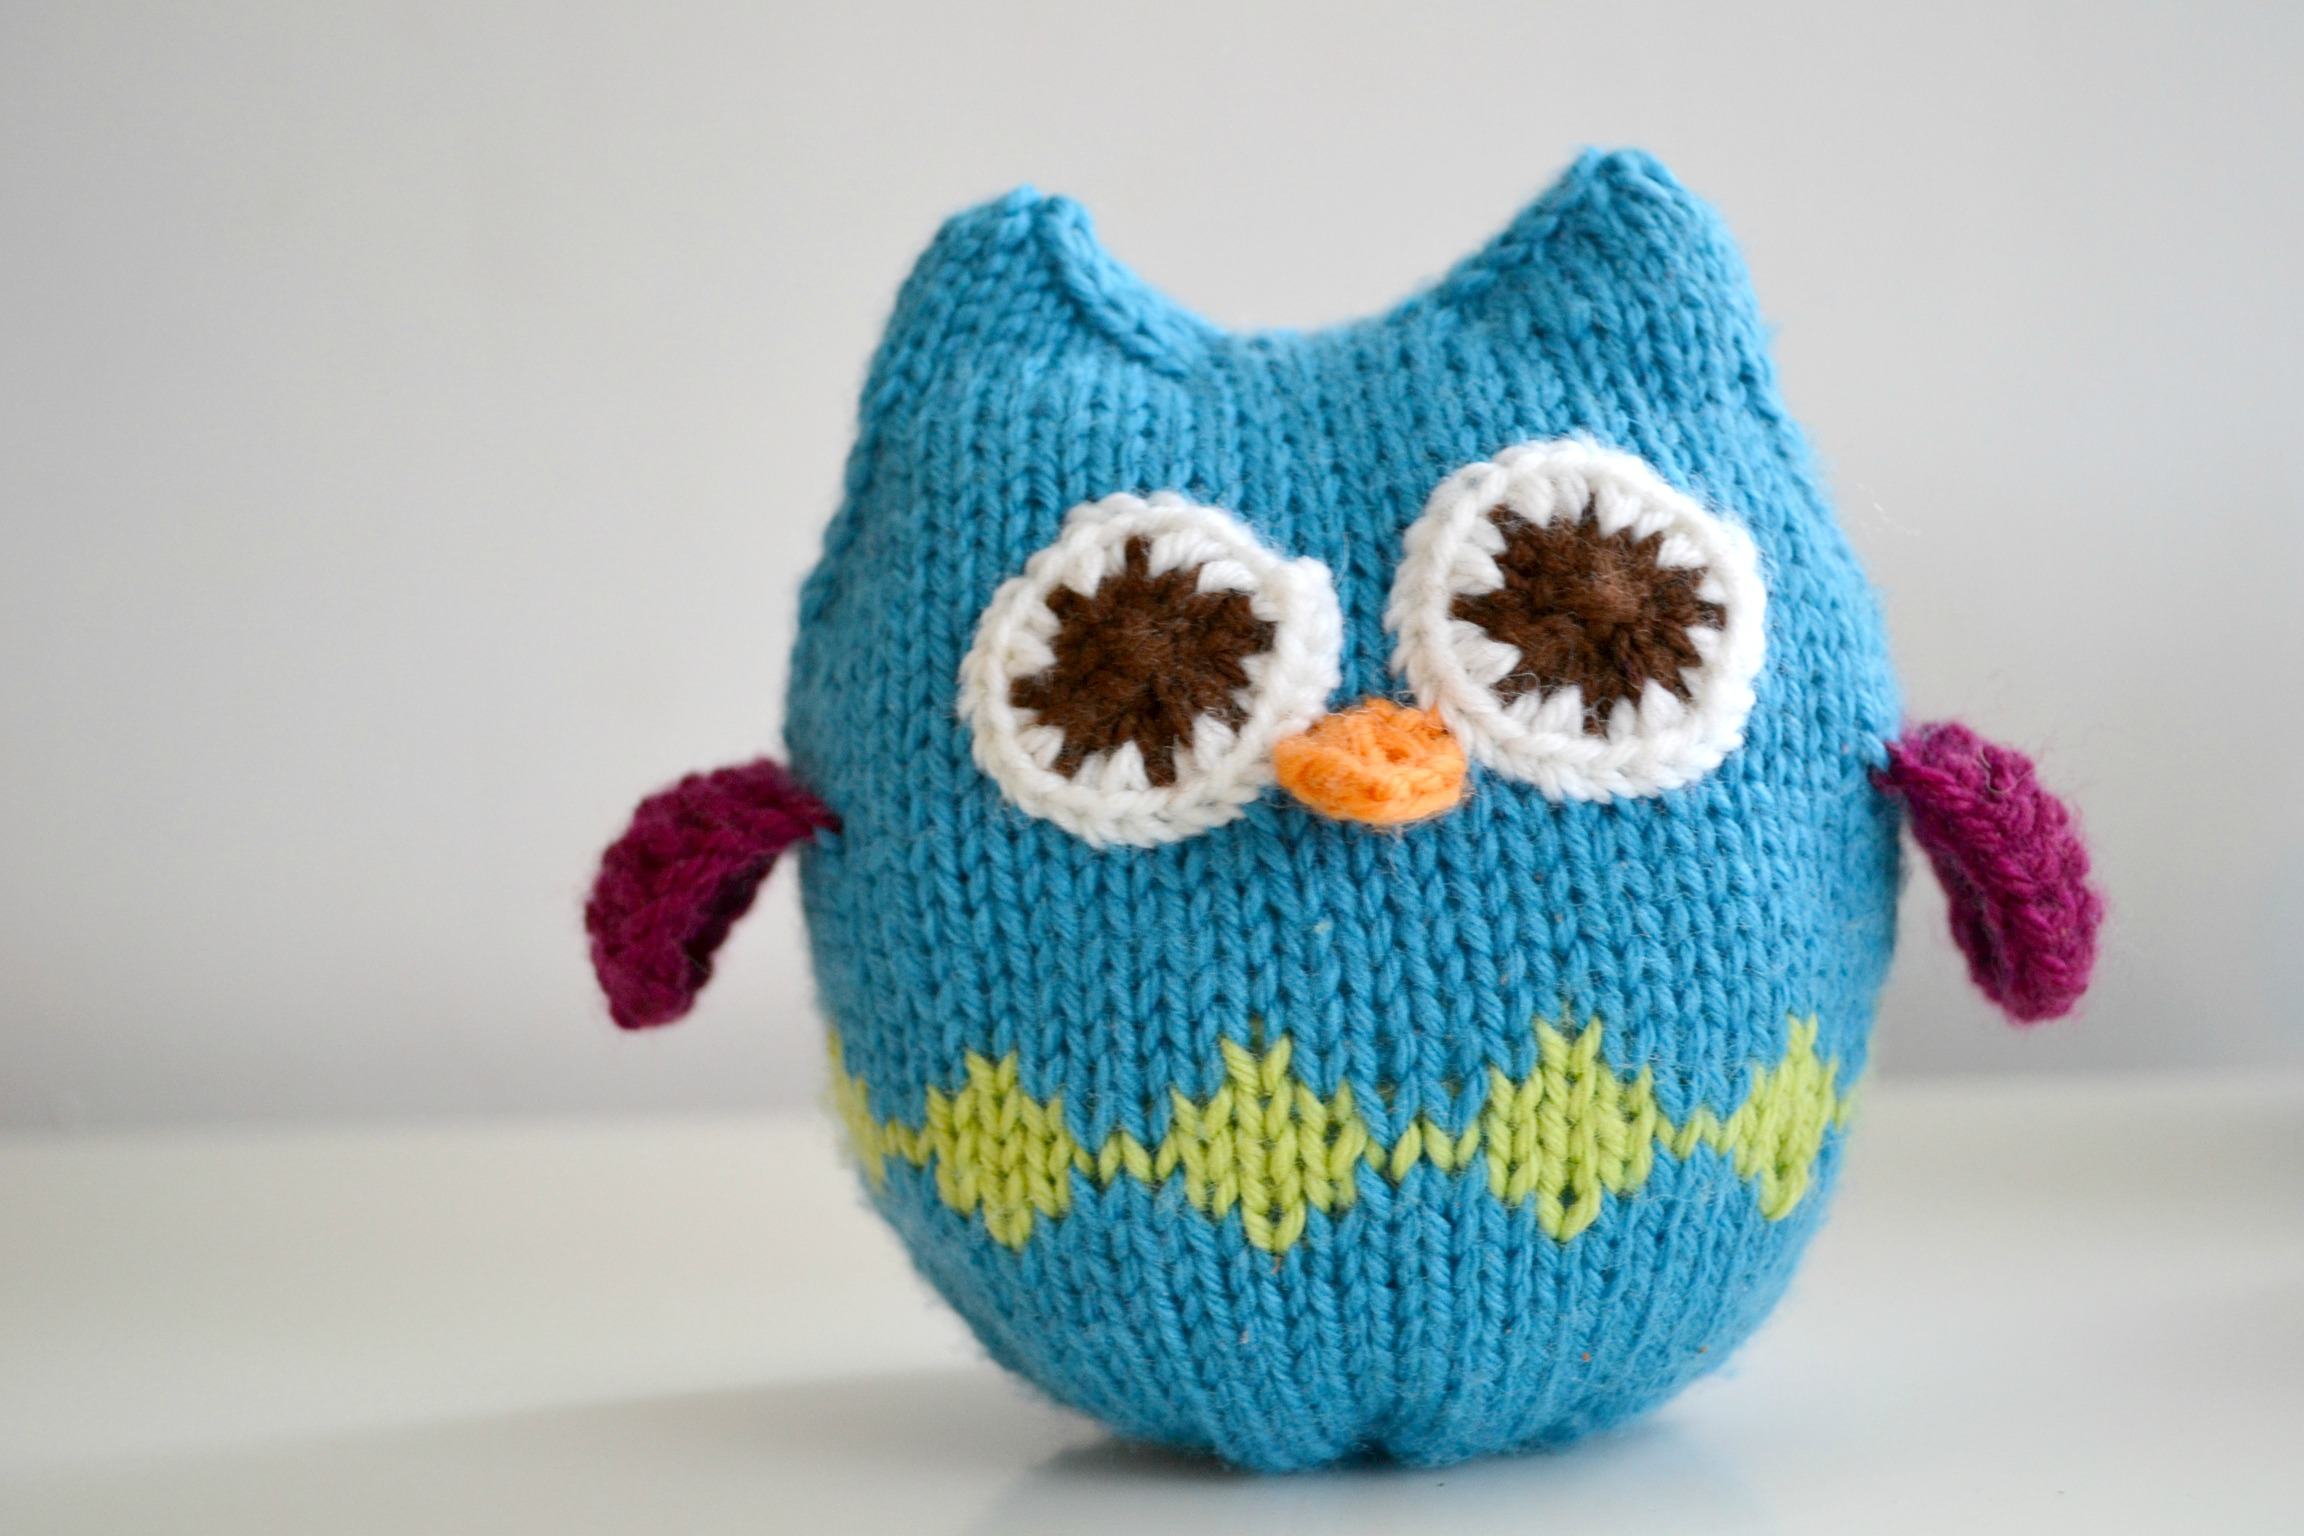 Disney Knitting Patterns Free : Squish Owls Pattern - aknitica